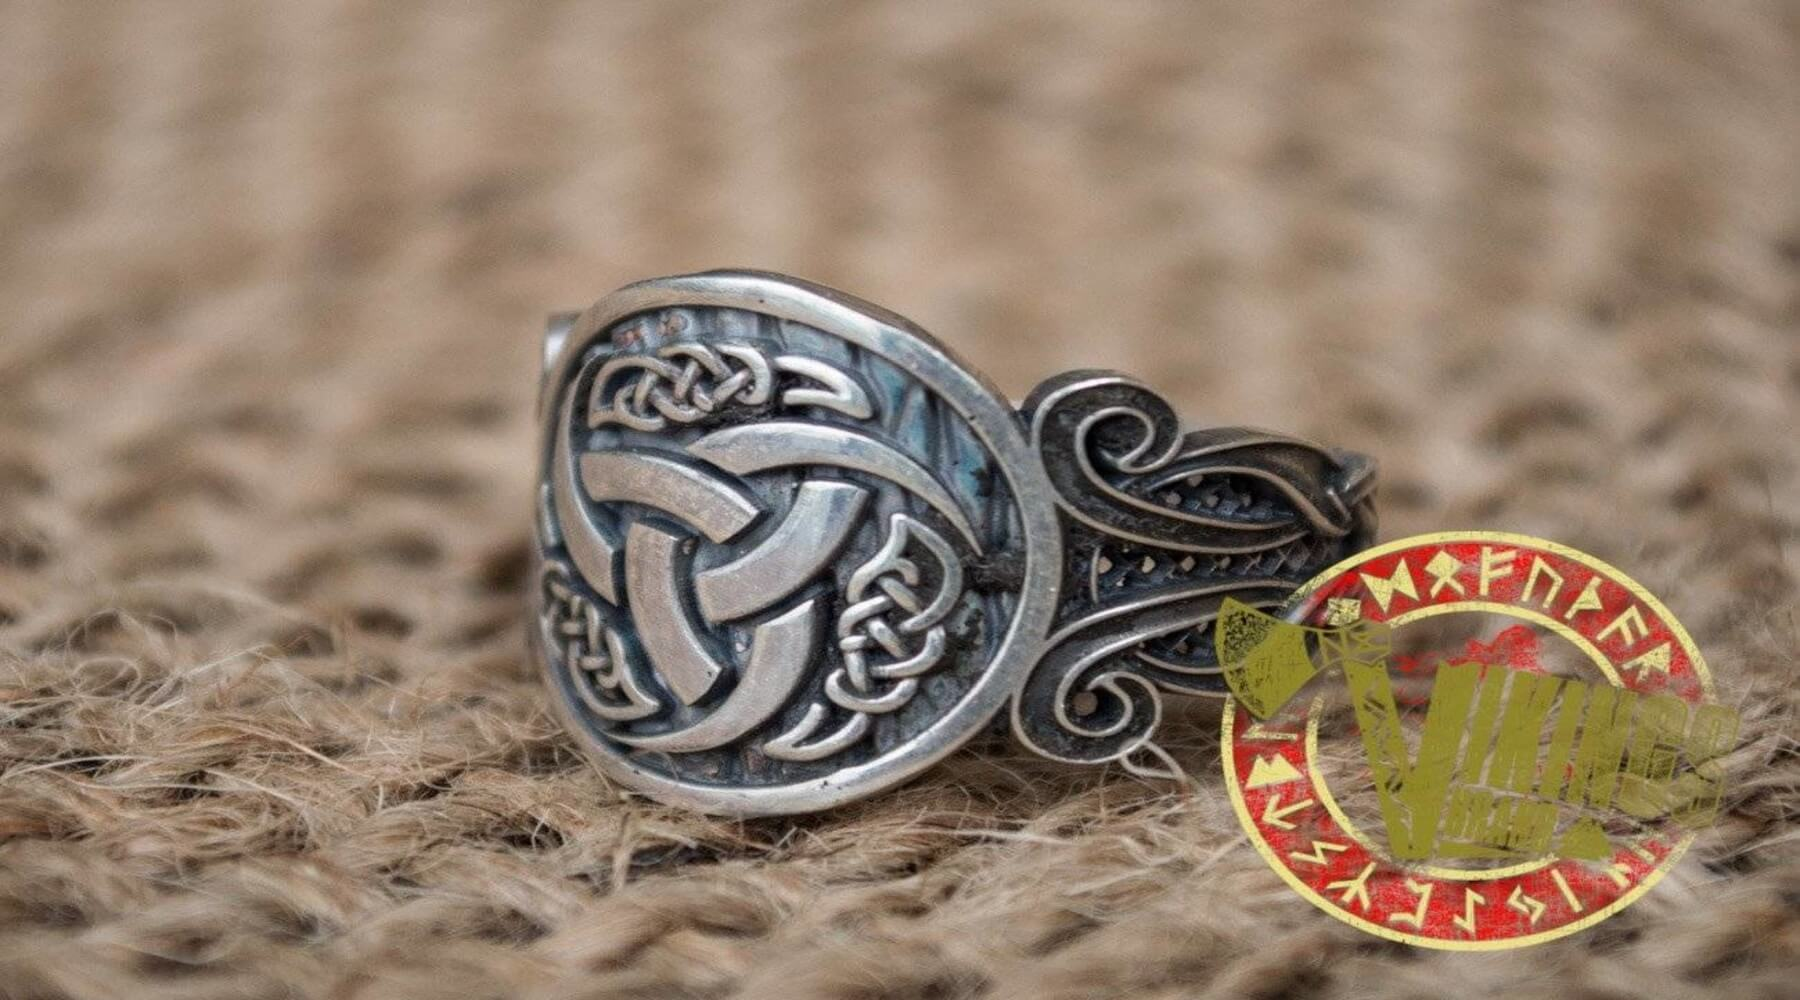 Viking ring with Odin's horn symbol